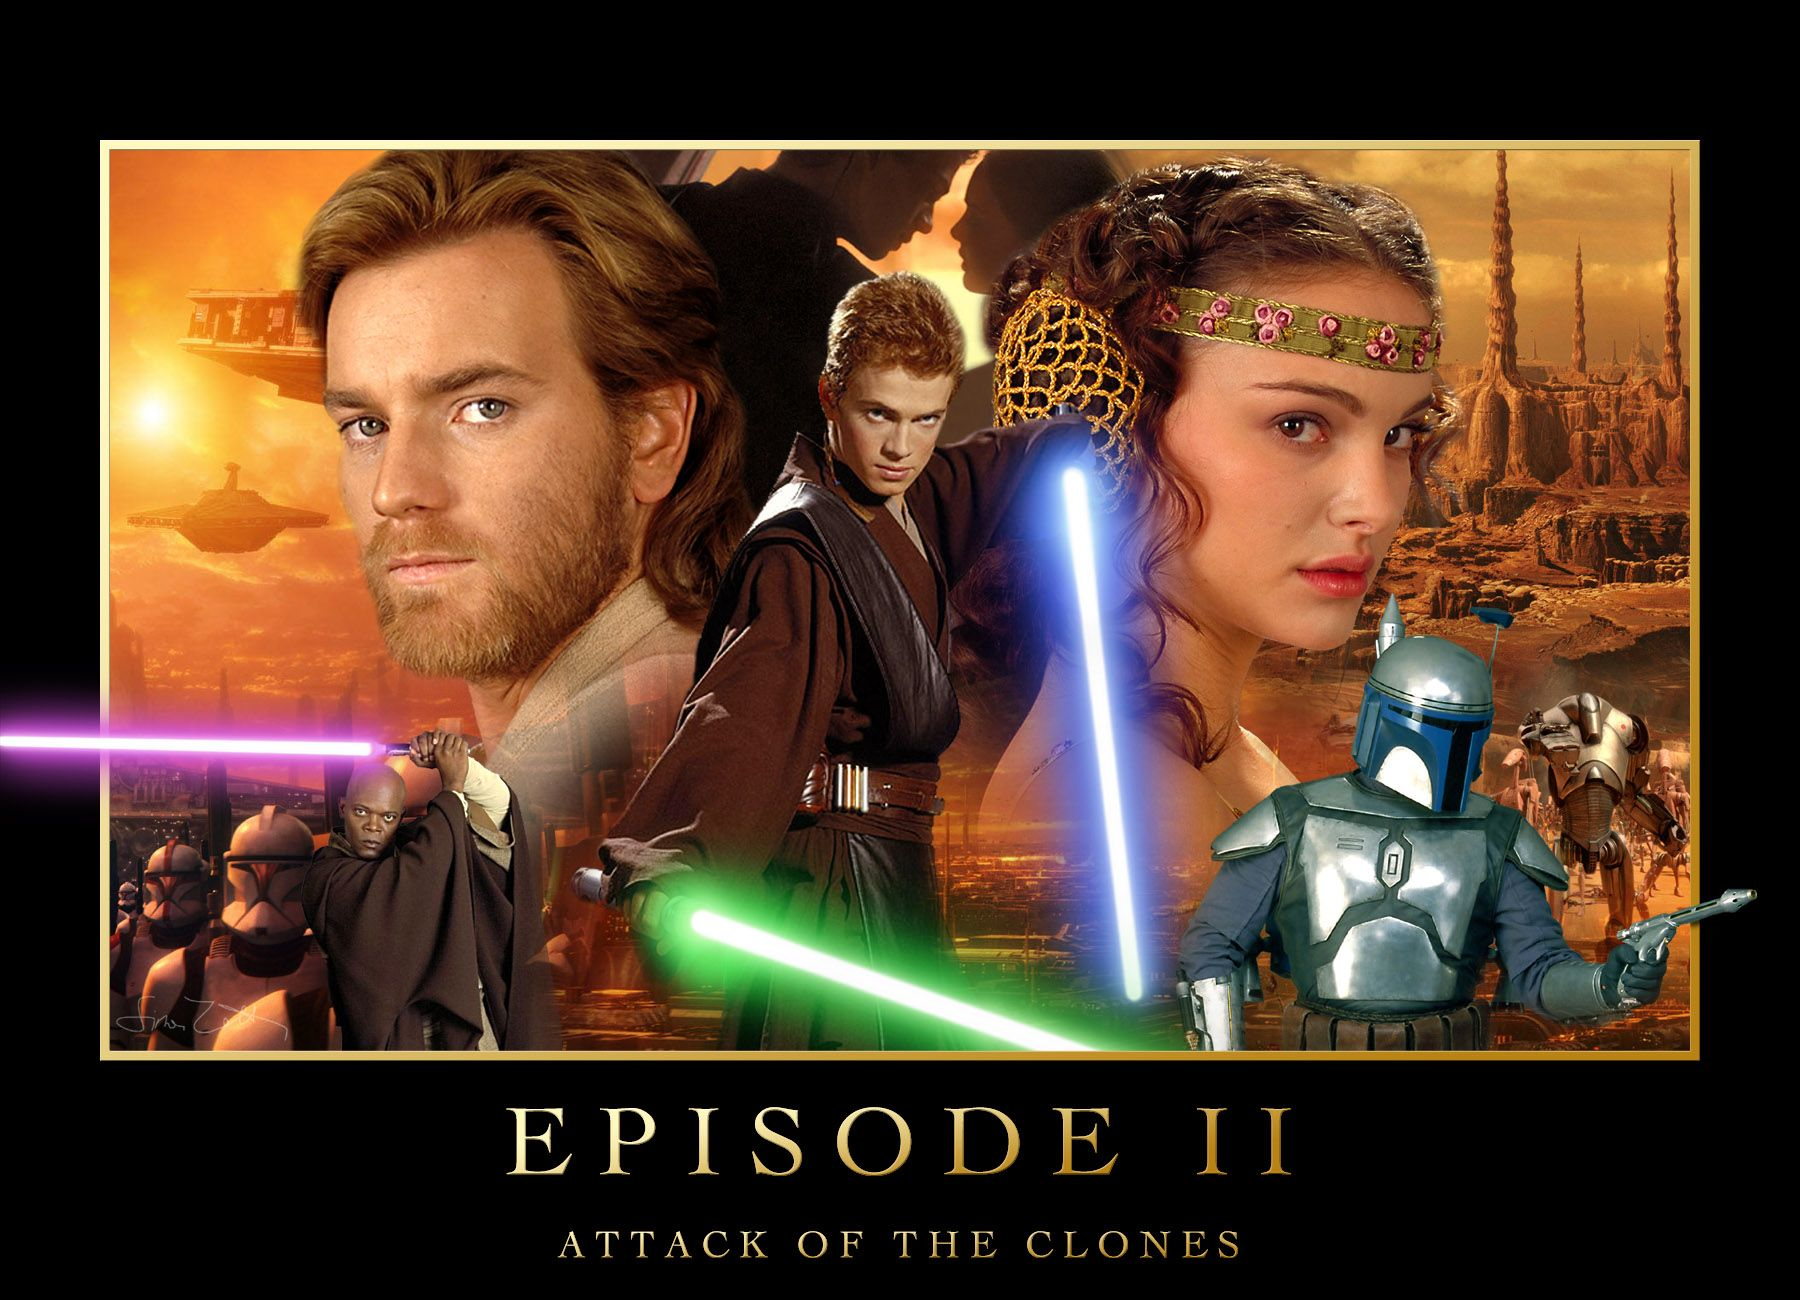 Attack Of The Clones Poster Star Wars Star Wars Episode 2 Star